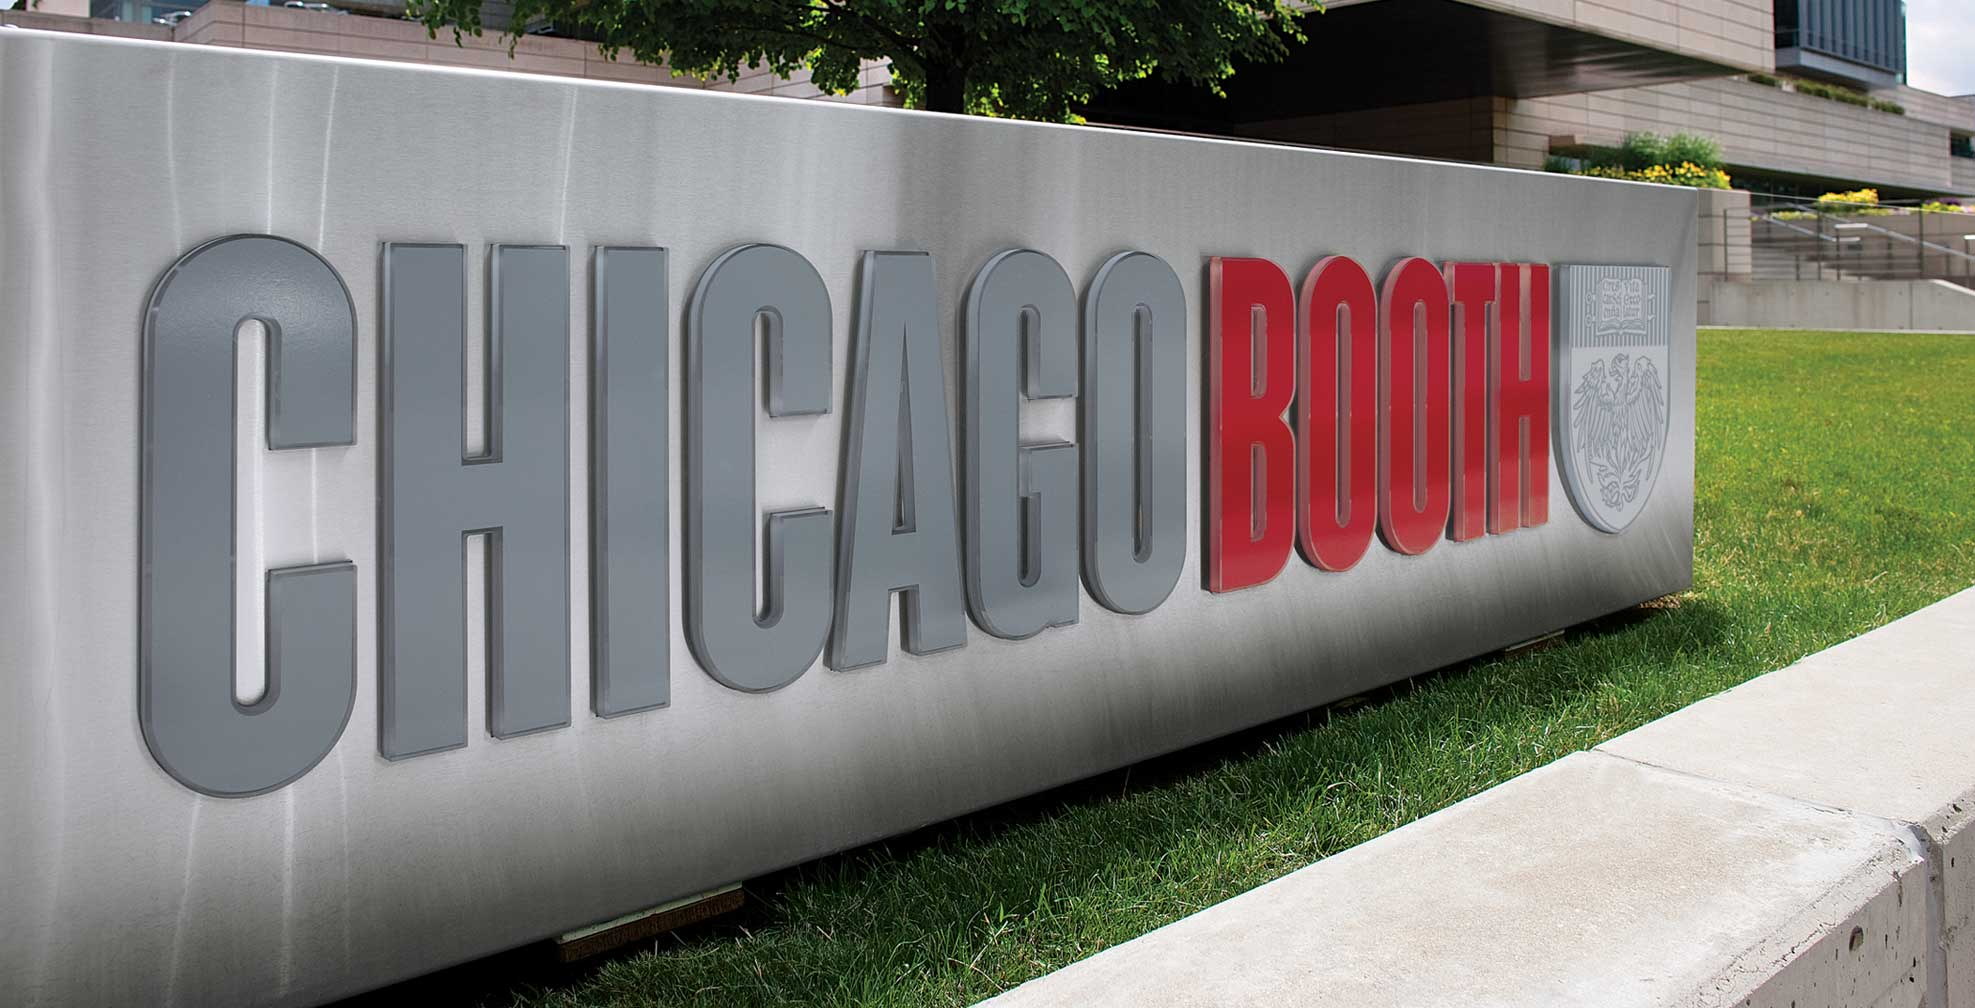 chicago booth school business essay questions The university of chicago booth school of business is one of the oldest in the us  and the first to offer an  tips for applying to chicago's mba program essay.